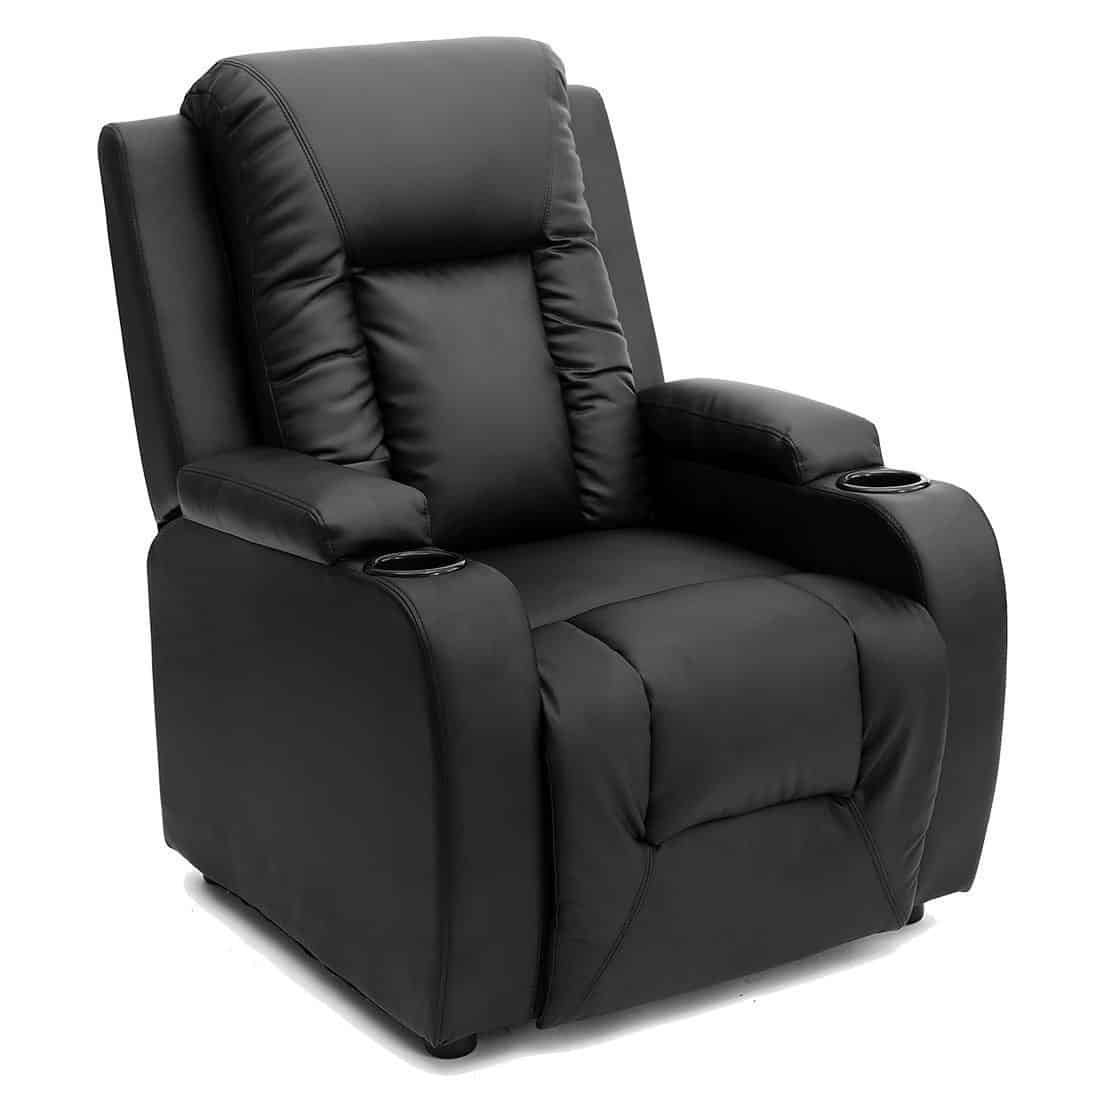 electric reclining chairs for elderly folding chair covers wholesale the best recliner in 2018